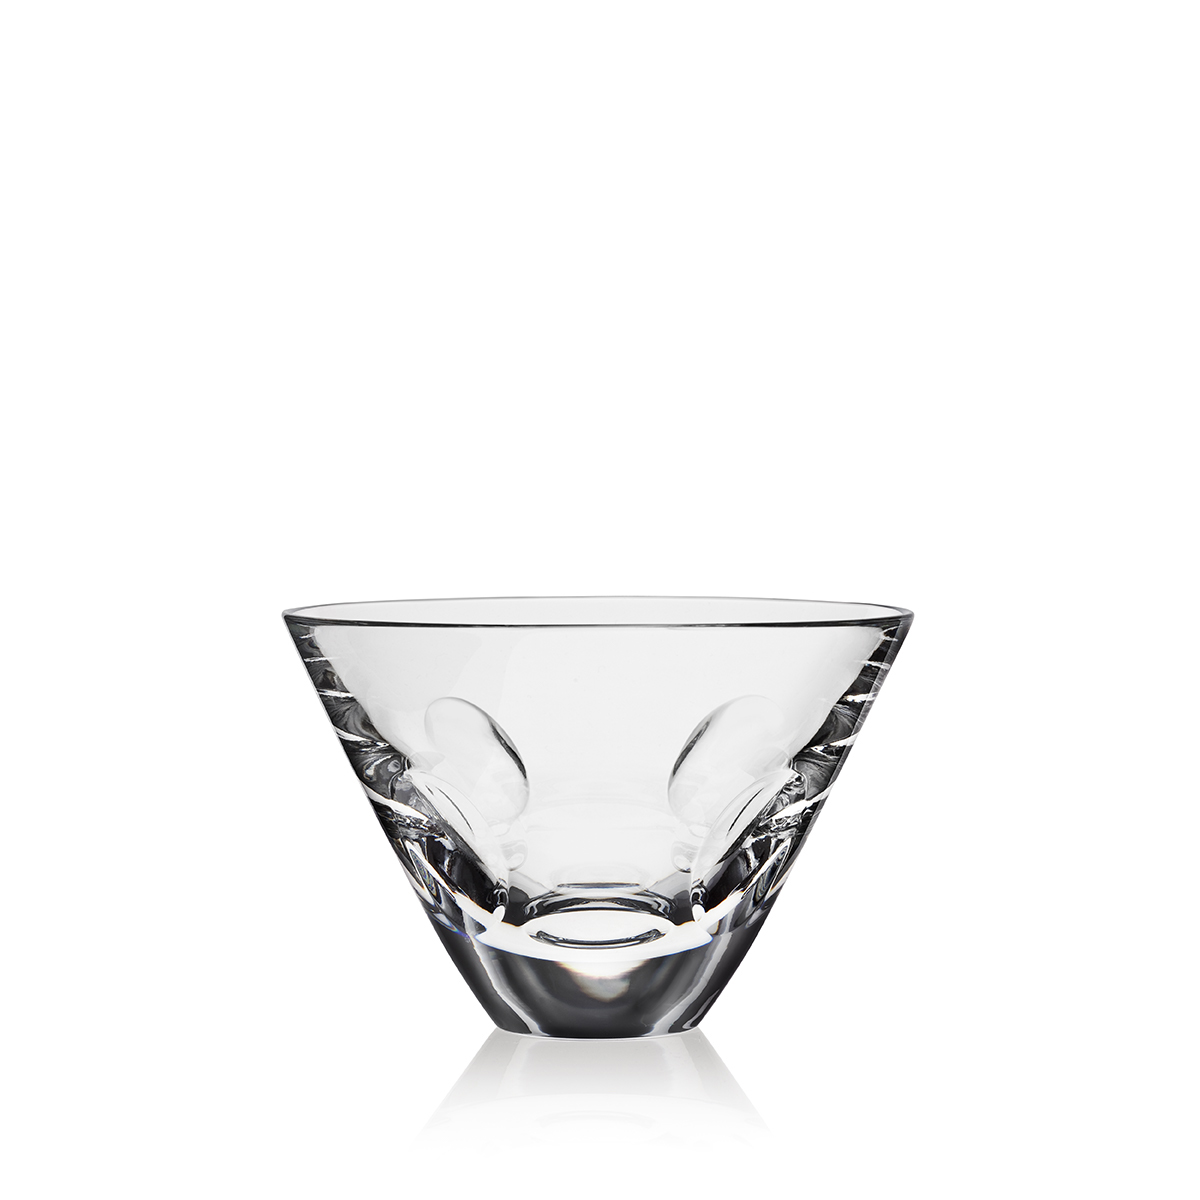 Steuben Verve Cocktail Glass, Single